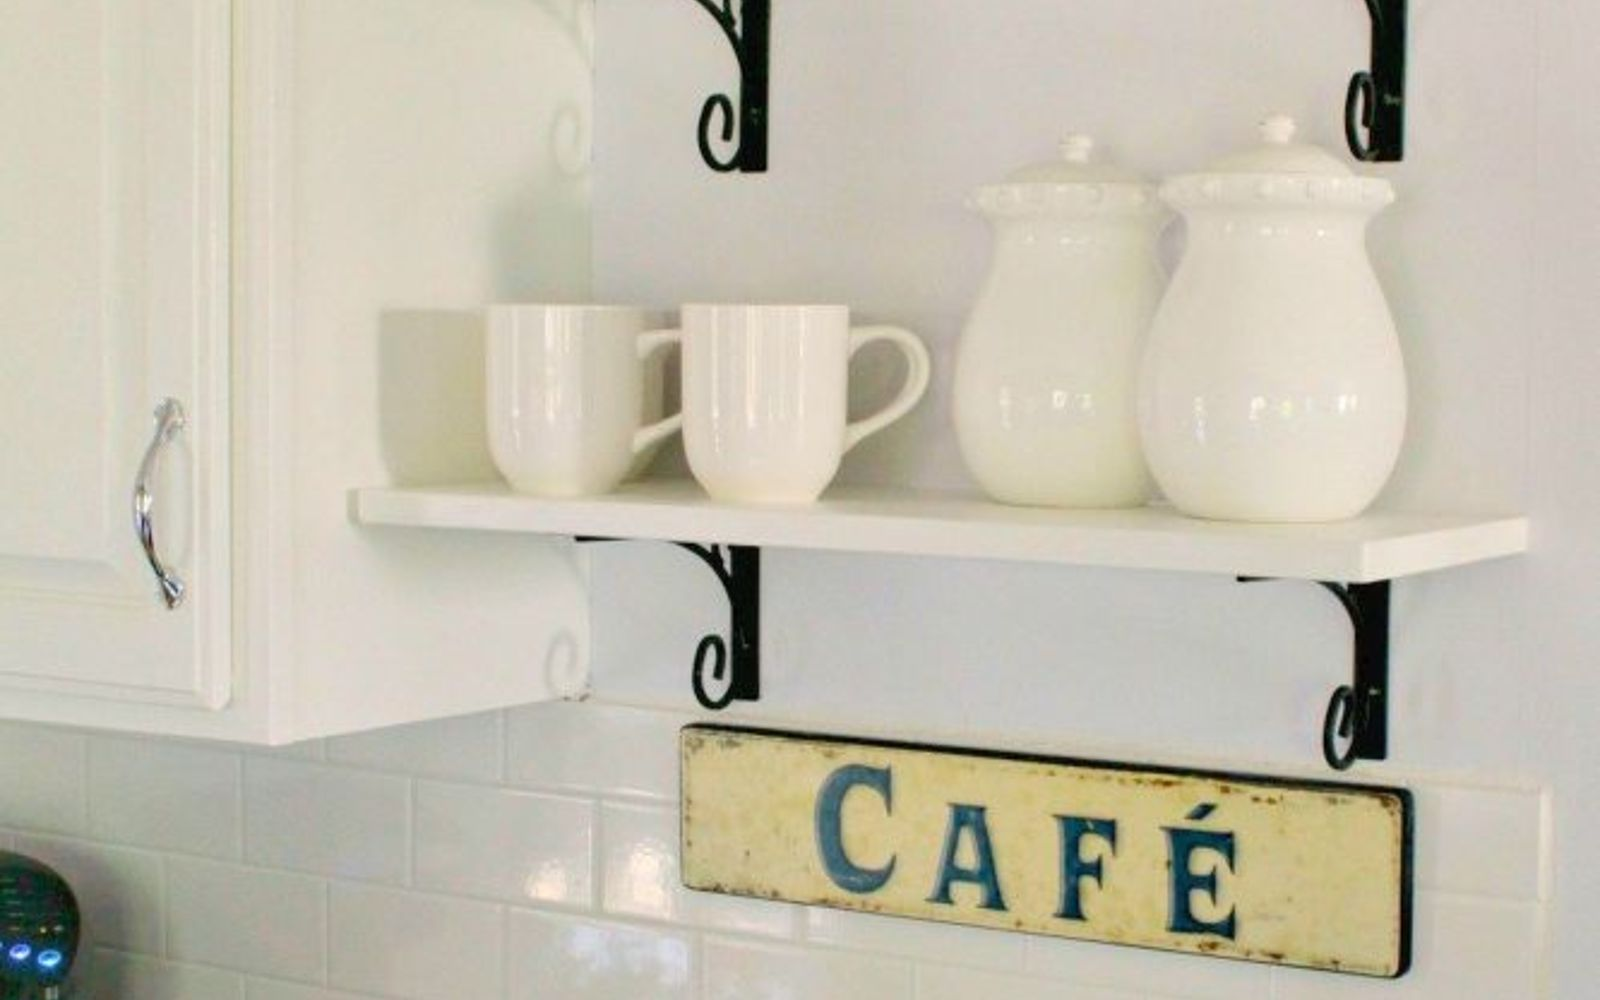 s pamper your guests without spending money 13 ideas , home decor, Set up a tasty beverage station